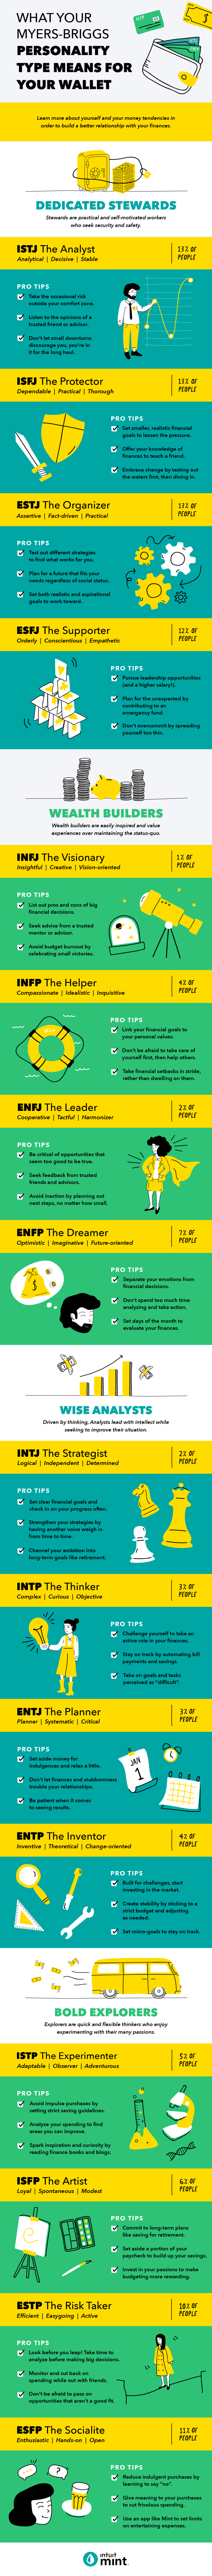 The Myers-Briggs personality types and related money tips